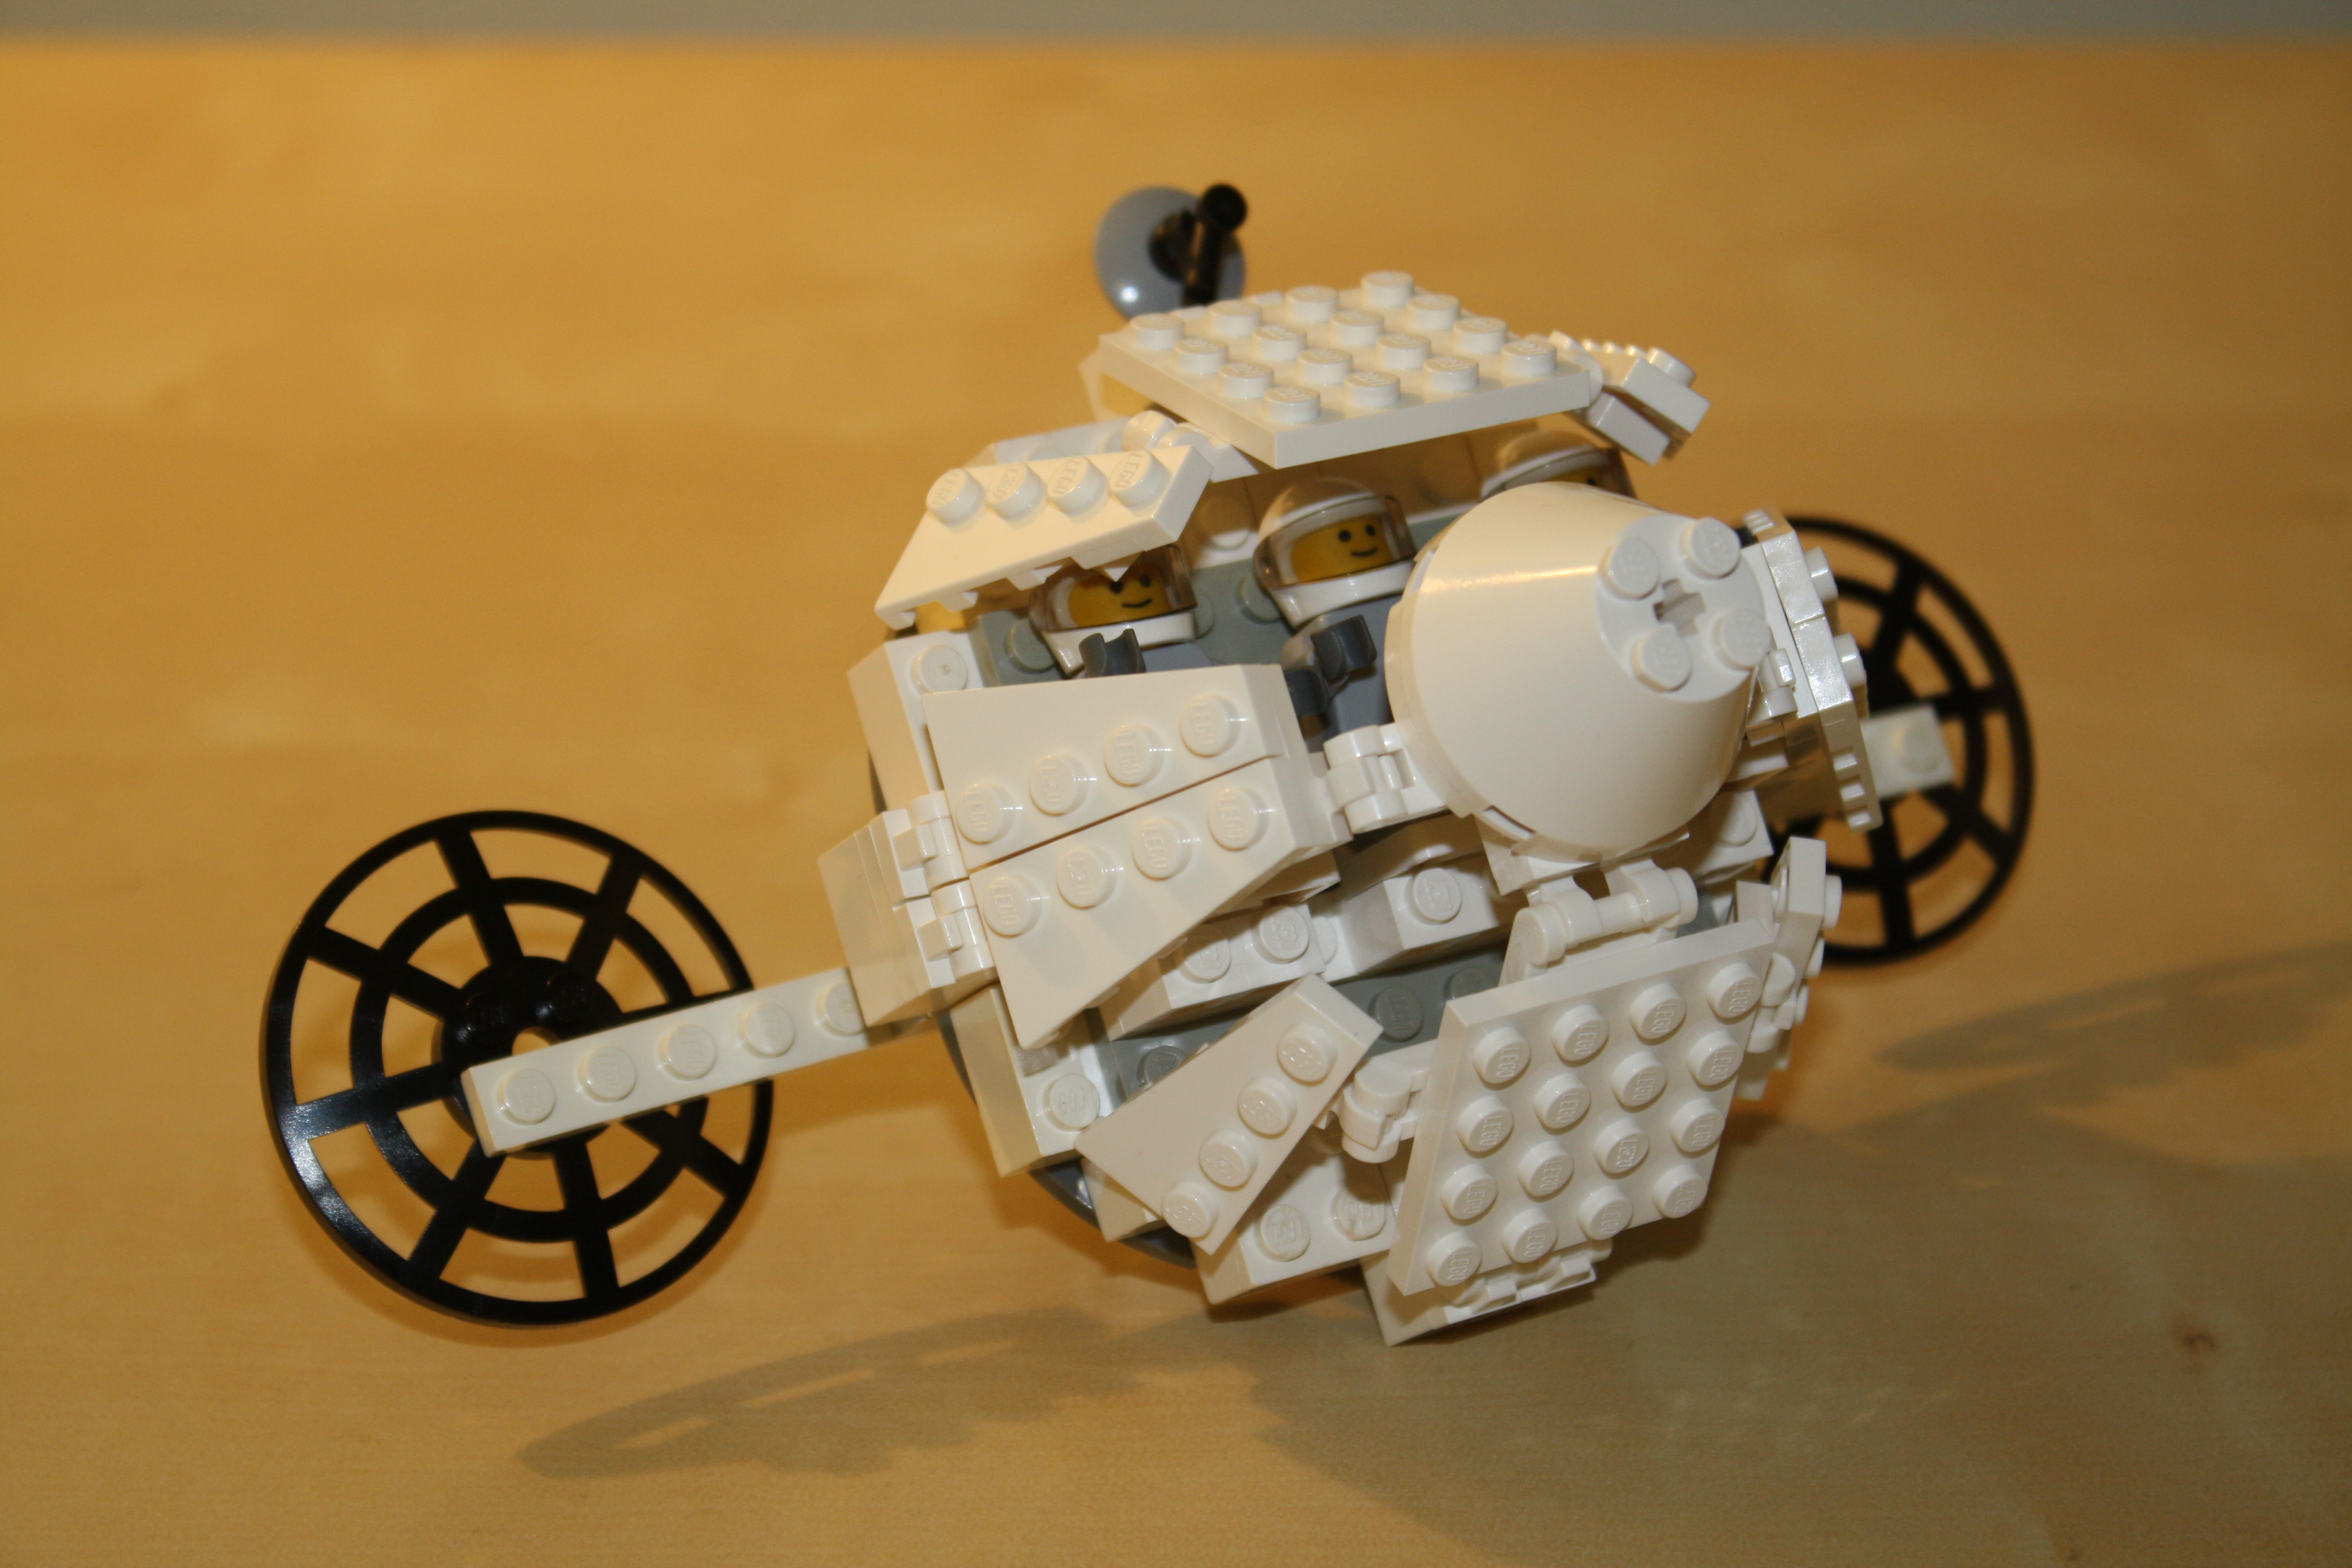 Lego Models Of Nasa S Project Constellation Orion And